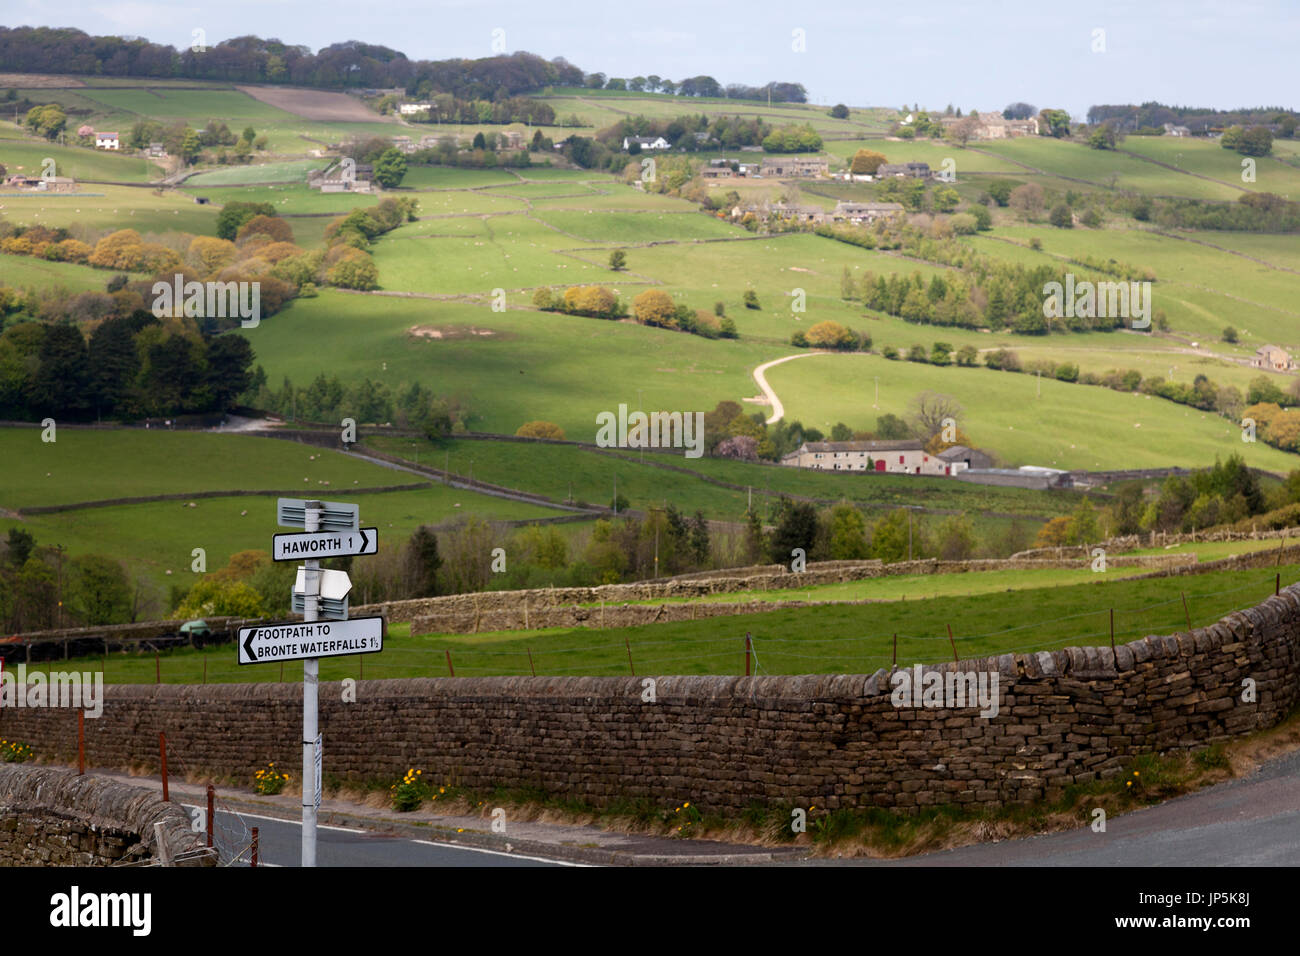 Scenery between Haworth and Stanbury, West Yorkshire - Stock Image